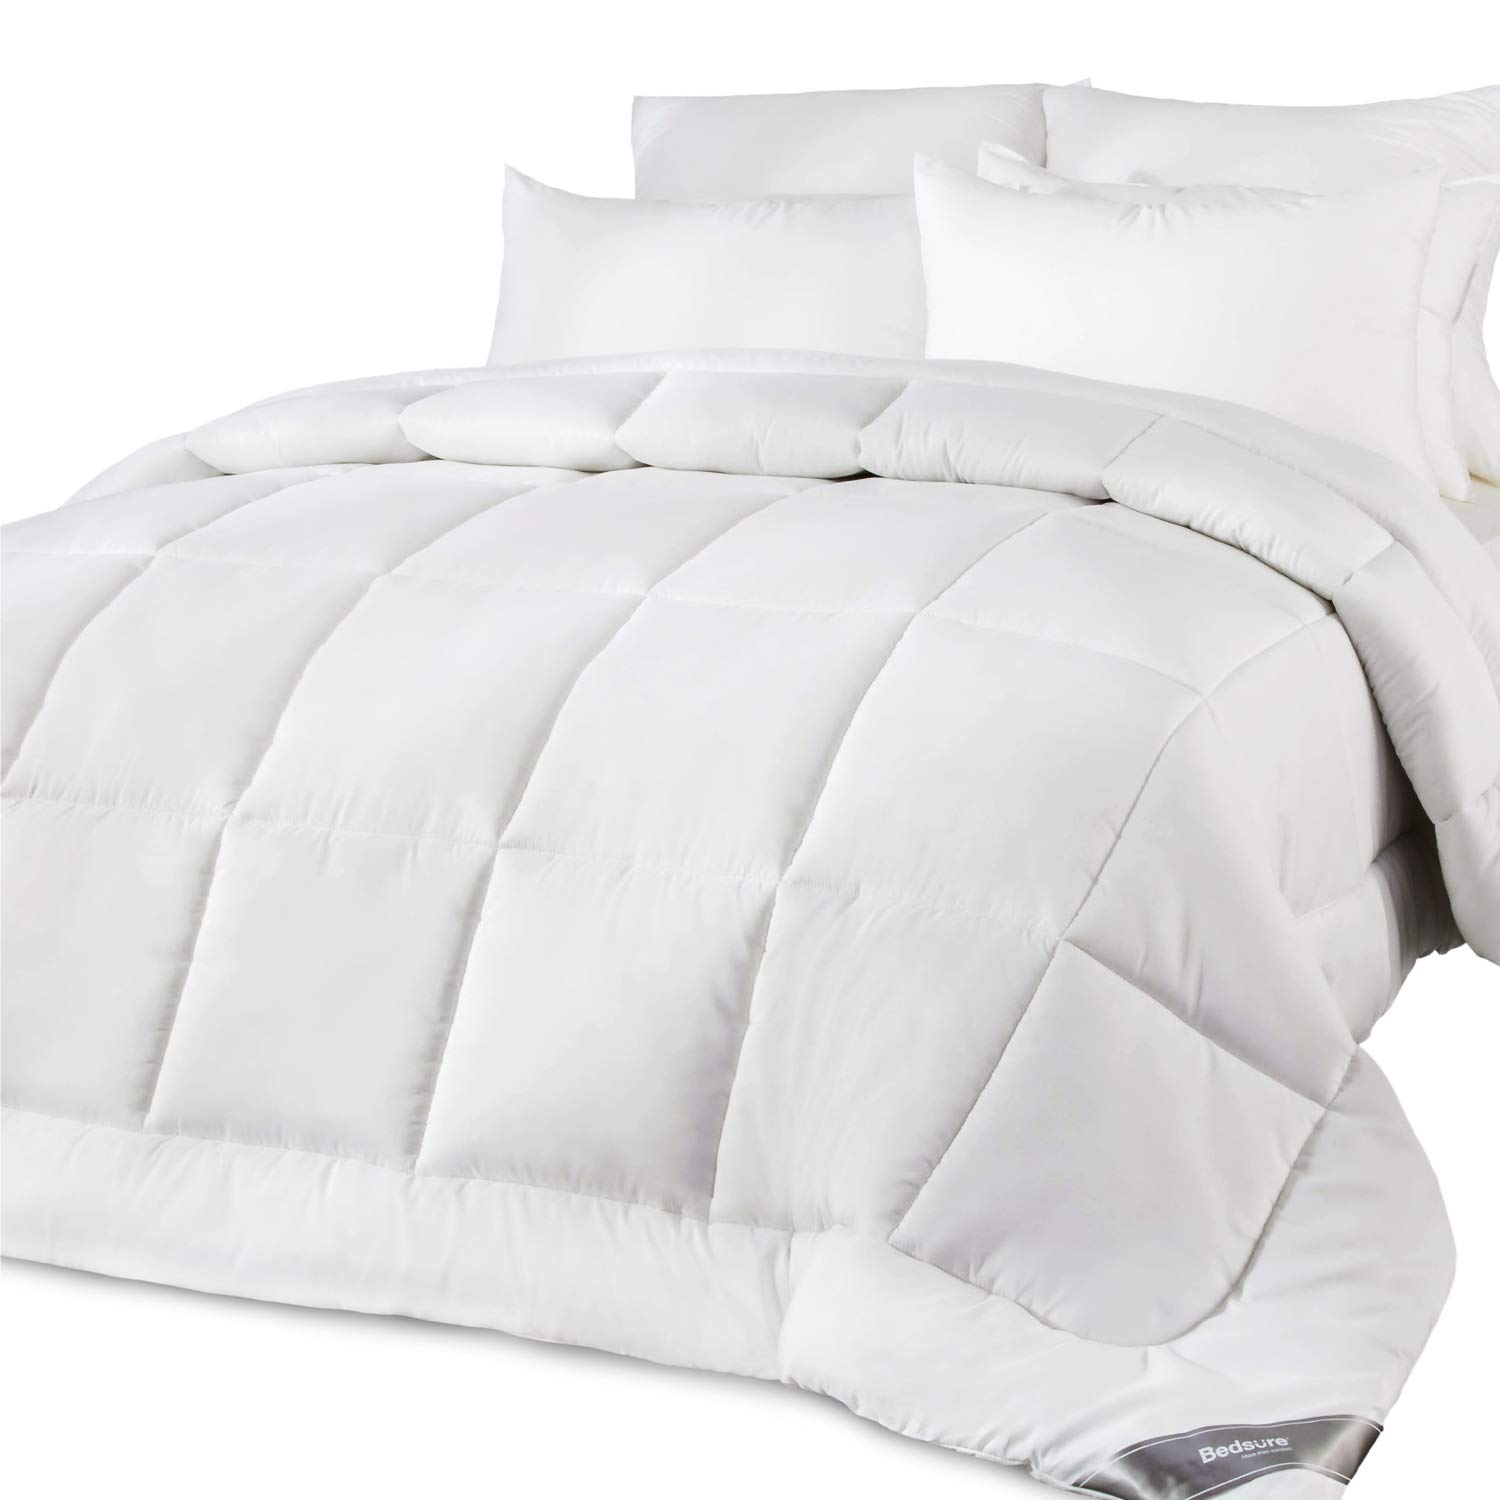 Bedsure King Comforter (102'' x 90'') All-Season Lightweight Down Alternative Quilted 300GSM Bed Comforters - Box-Stitching Construction - White Duvet Insert with Corner Tabs - Machine Washable